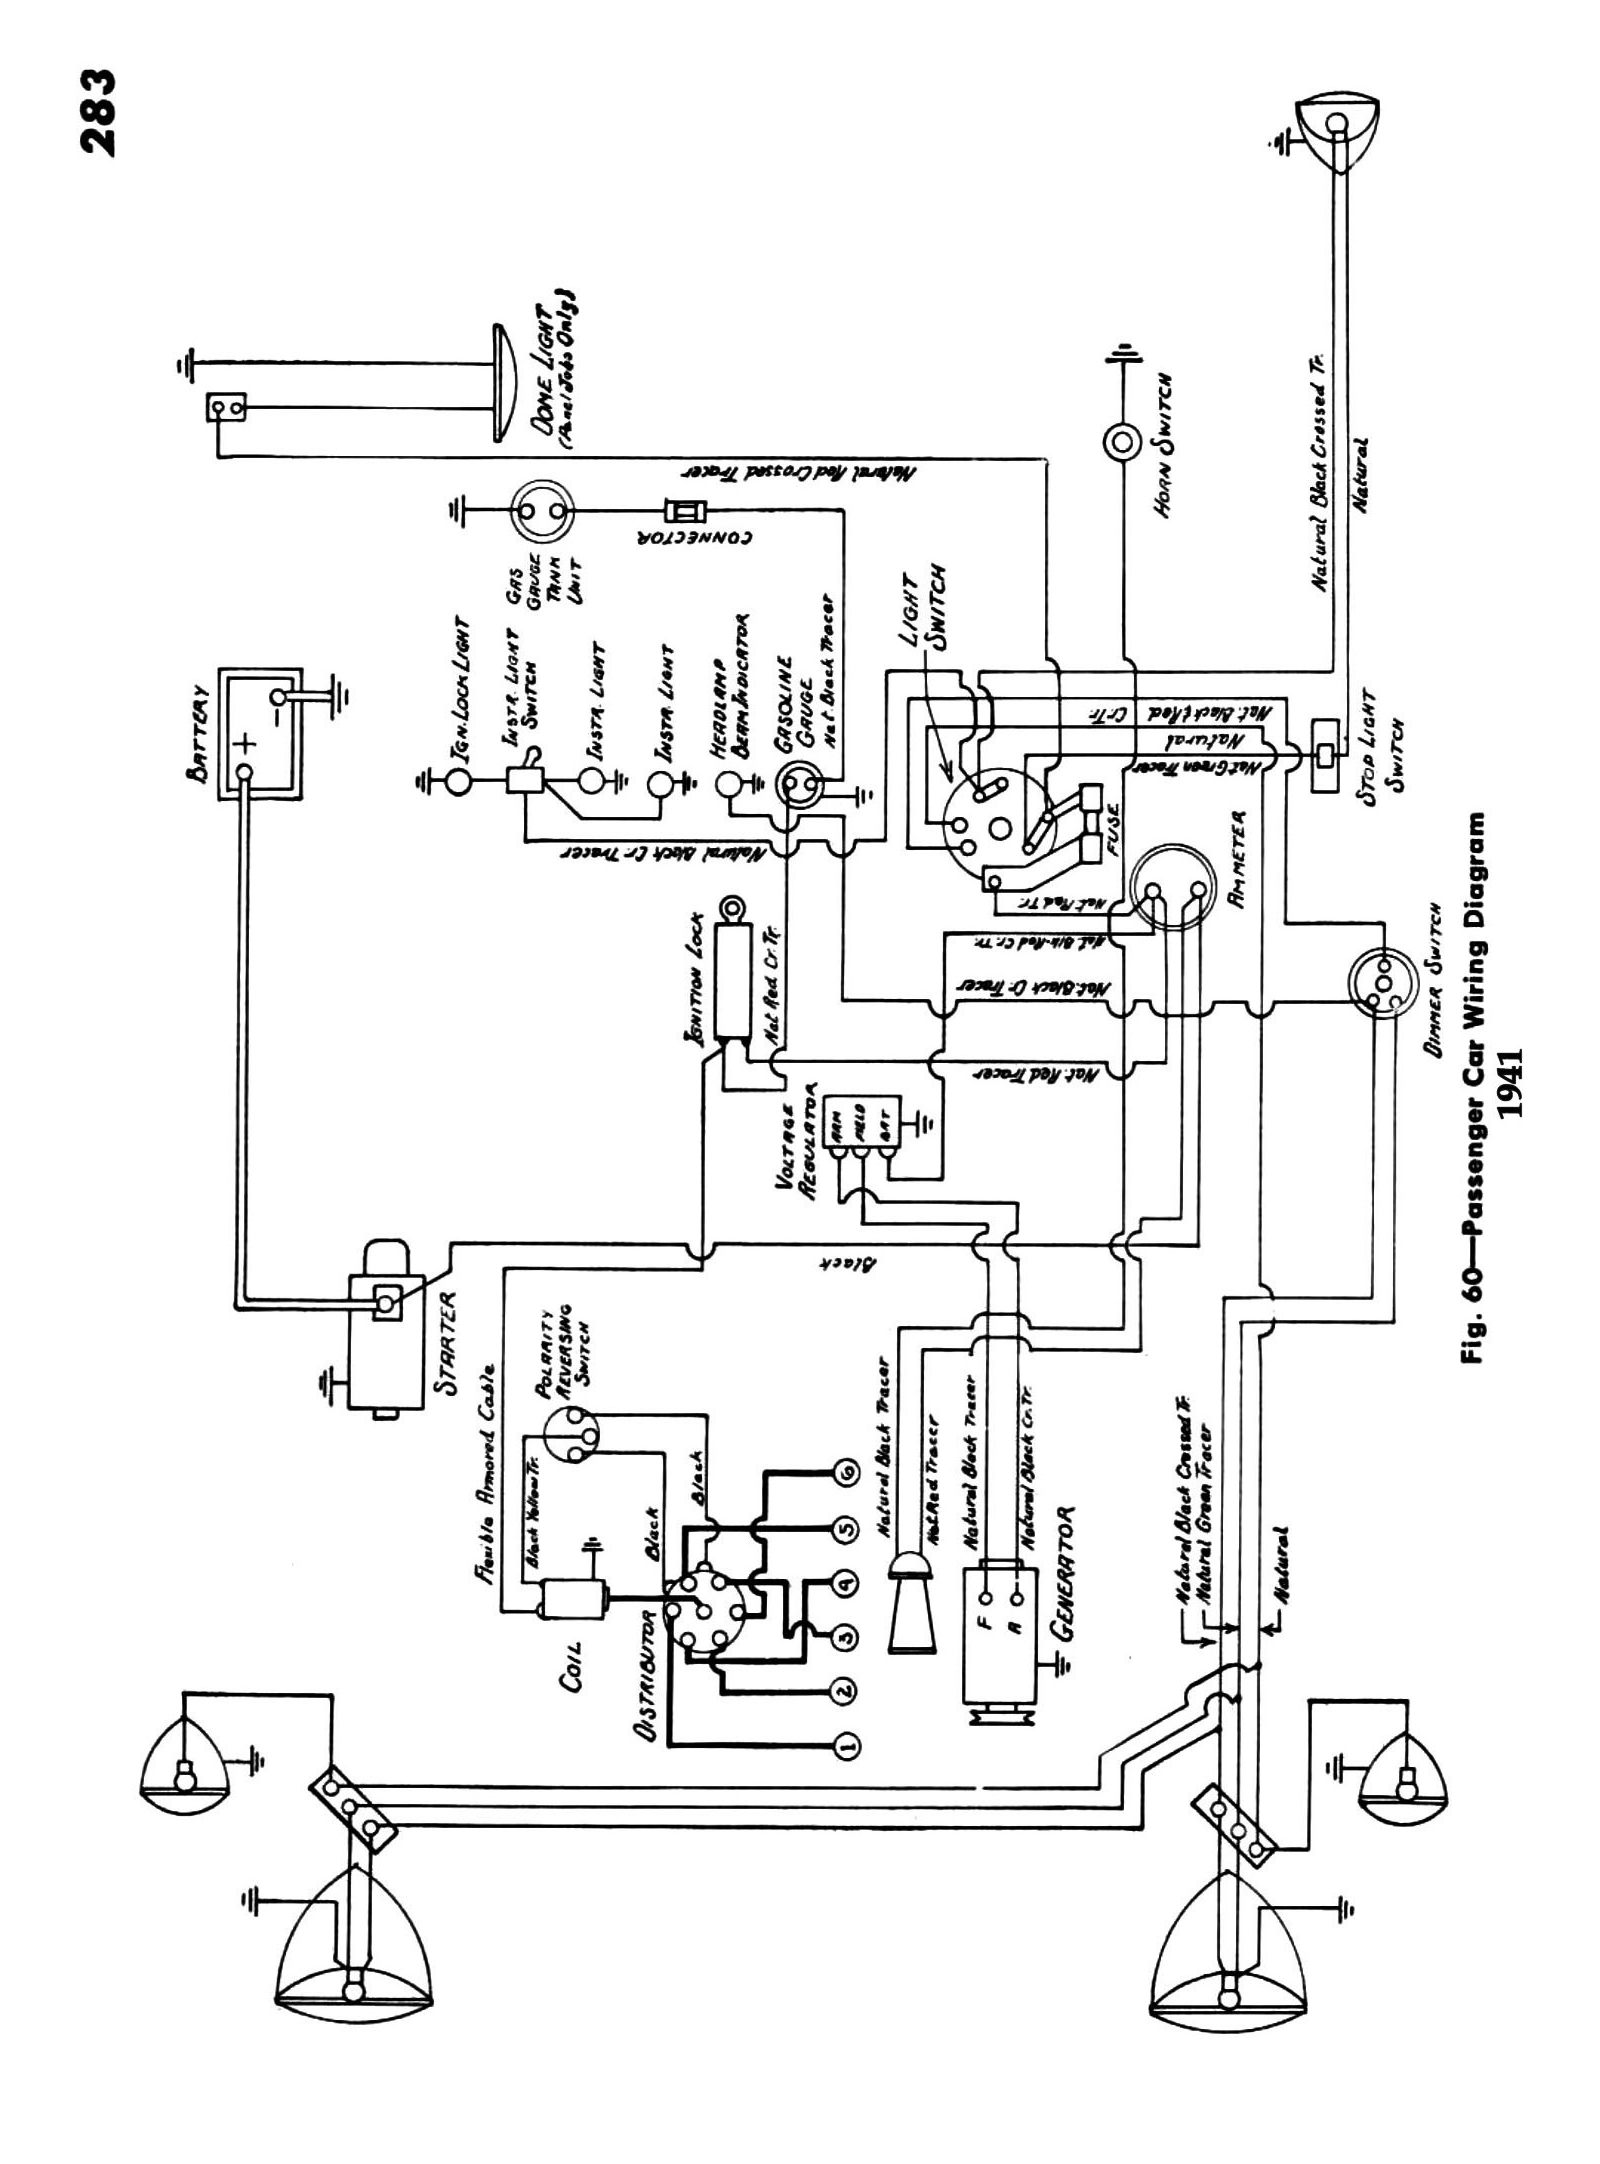 41csm283 1958 ford car wiring diagram 1958 wirning diagrams 2000 Ford Headlight Switch Wiring Diagram at webbmarketing.co